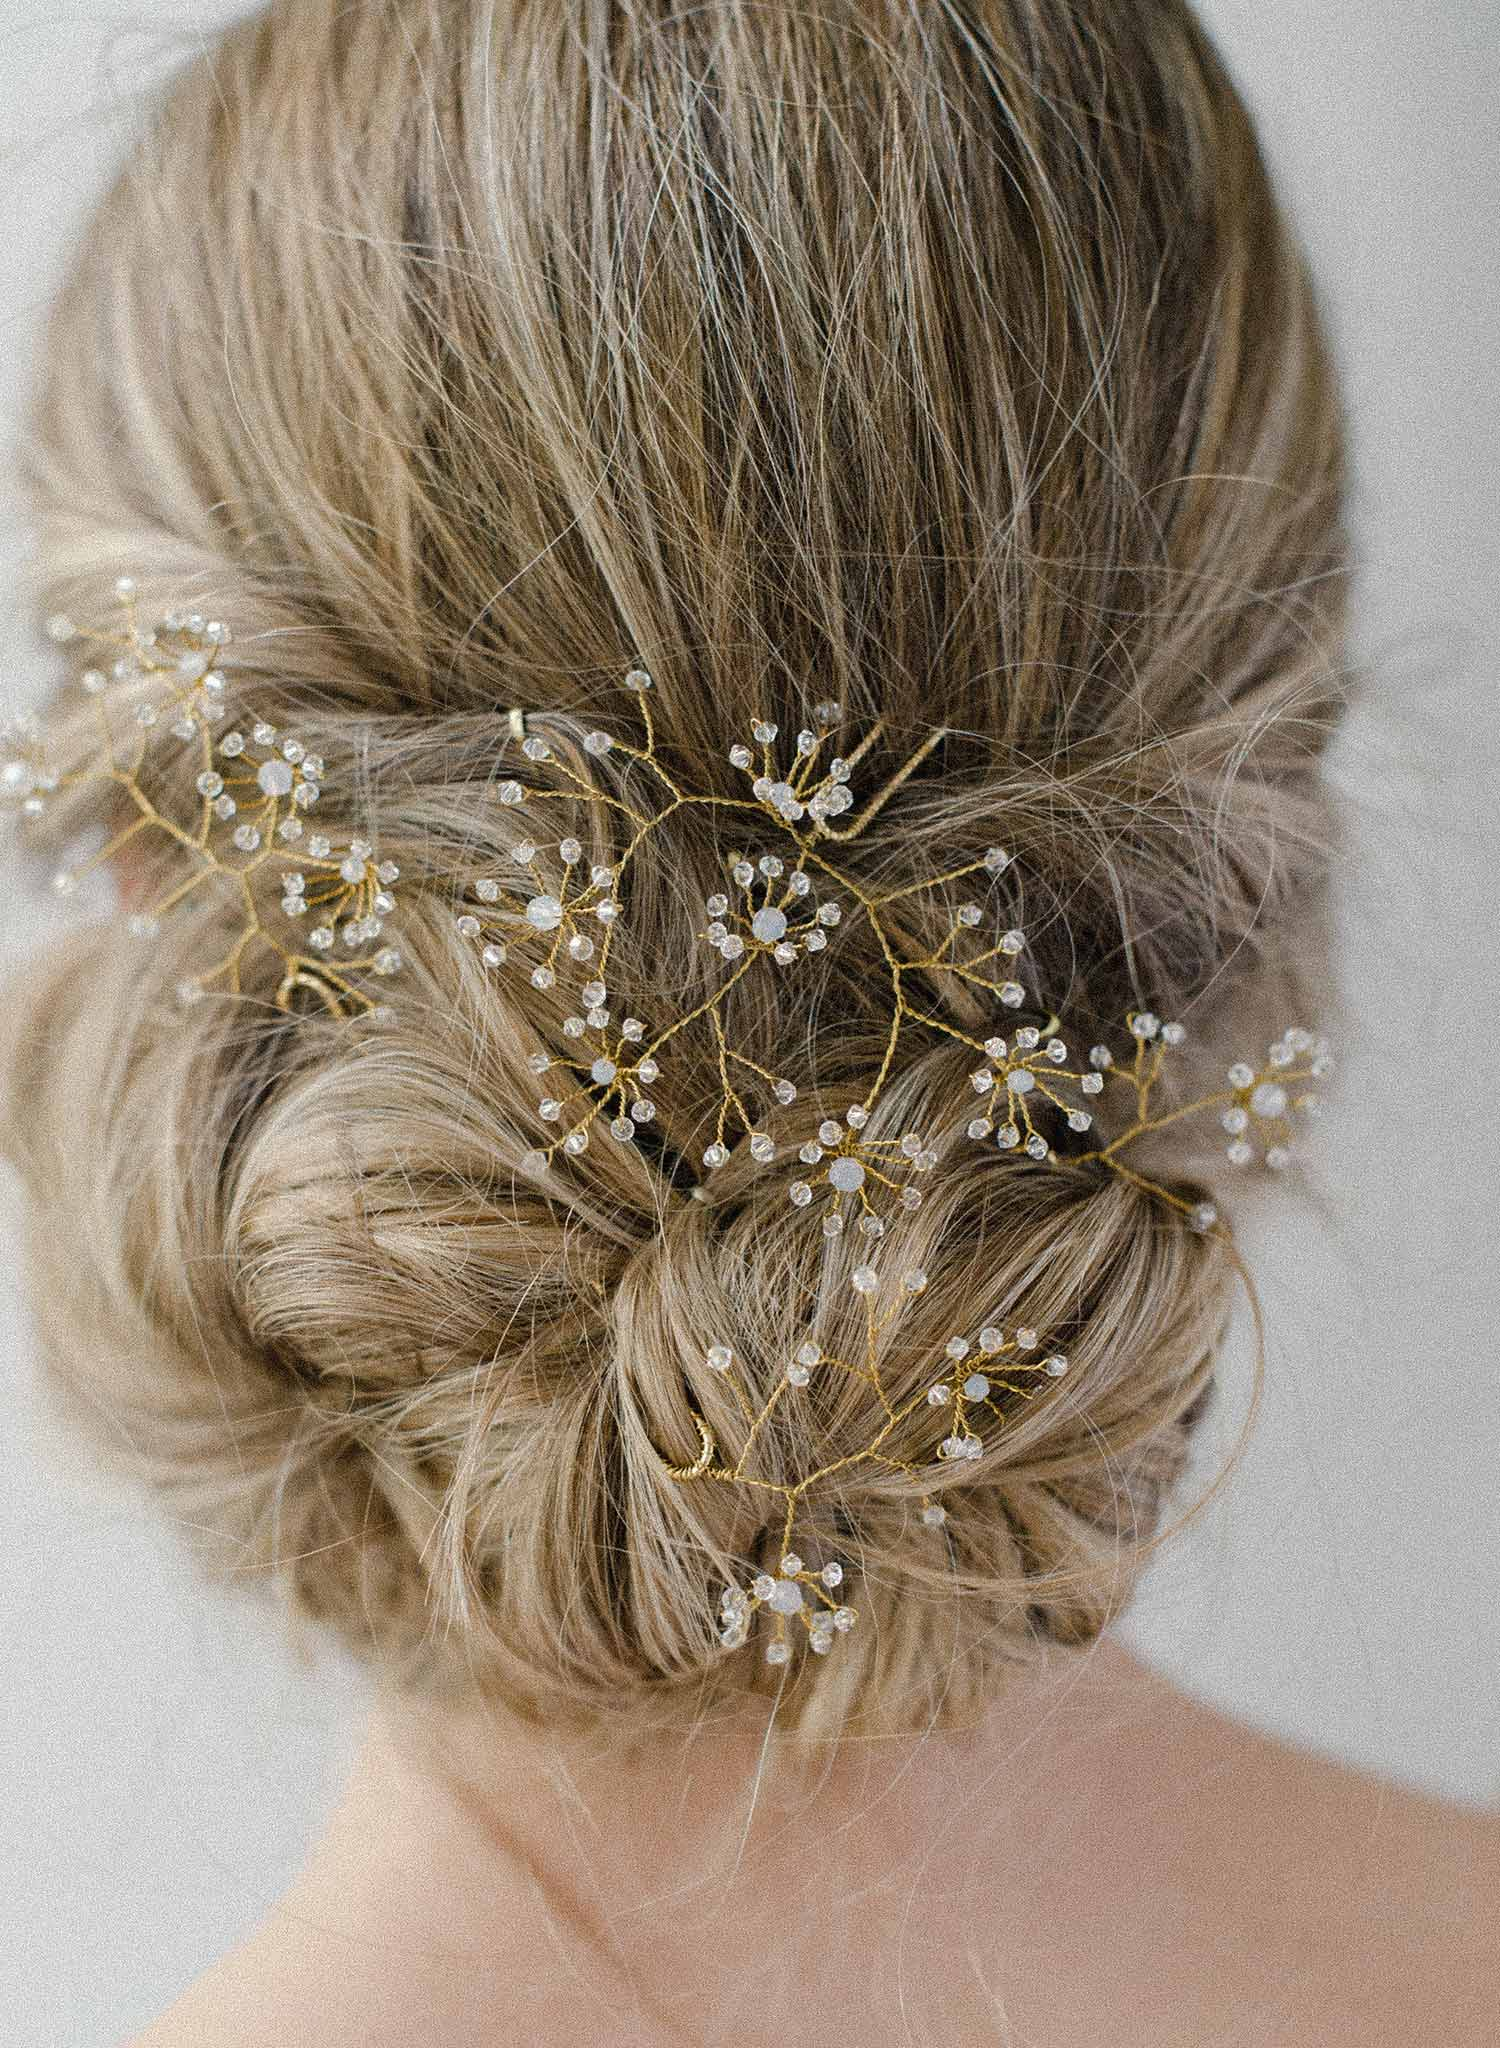 Crystallized breathless hair pin set of 4 - Style #2020